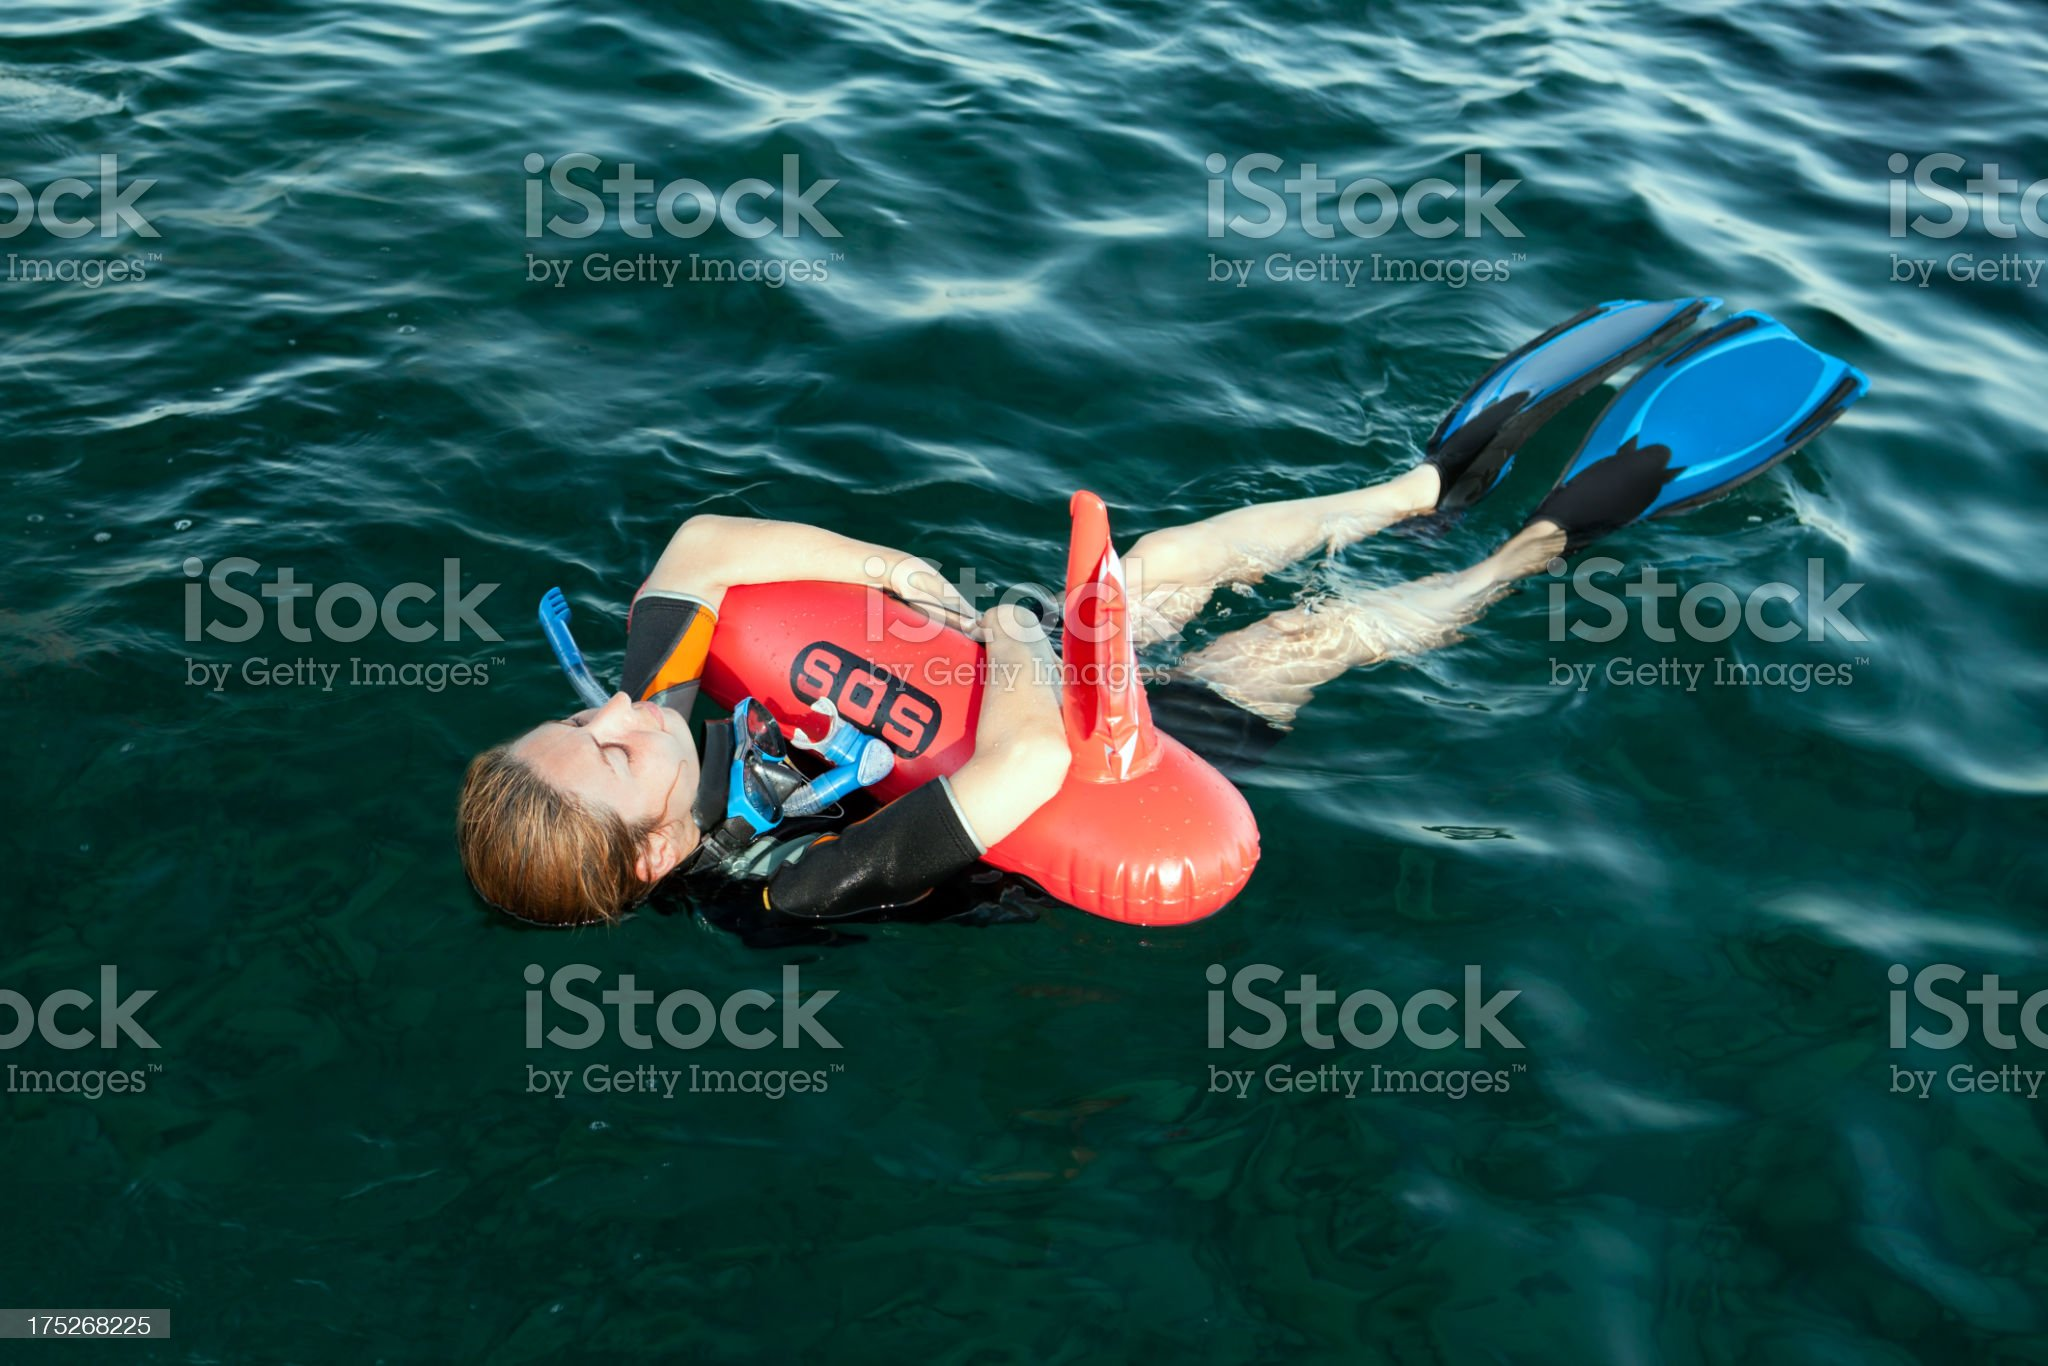 Wetsuit wore women holding a s.o.s. buoy royalty-free stock photo